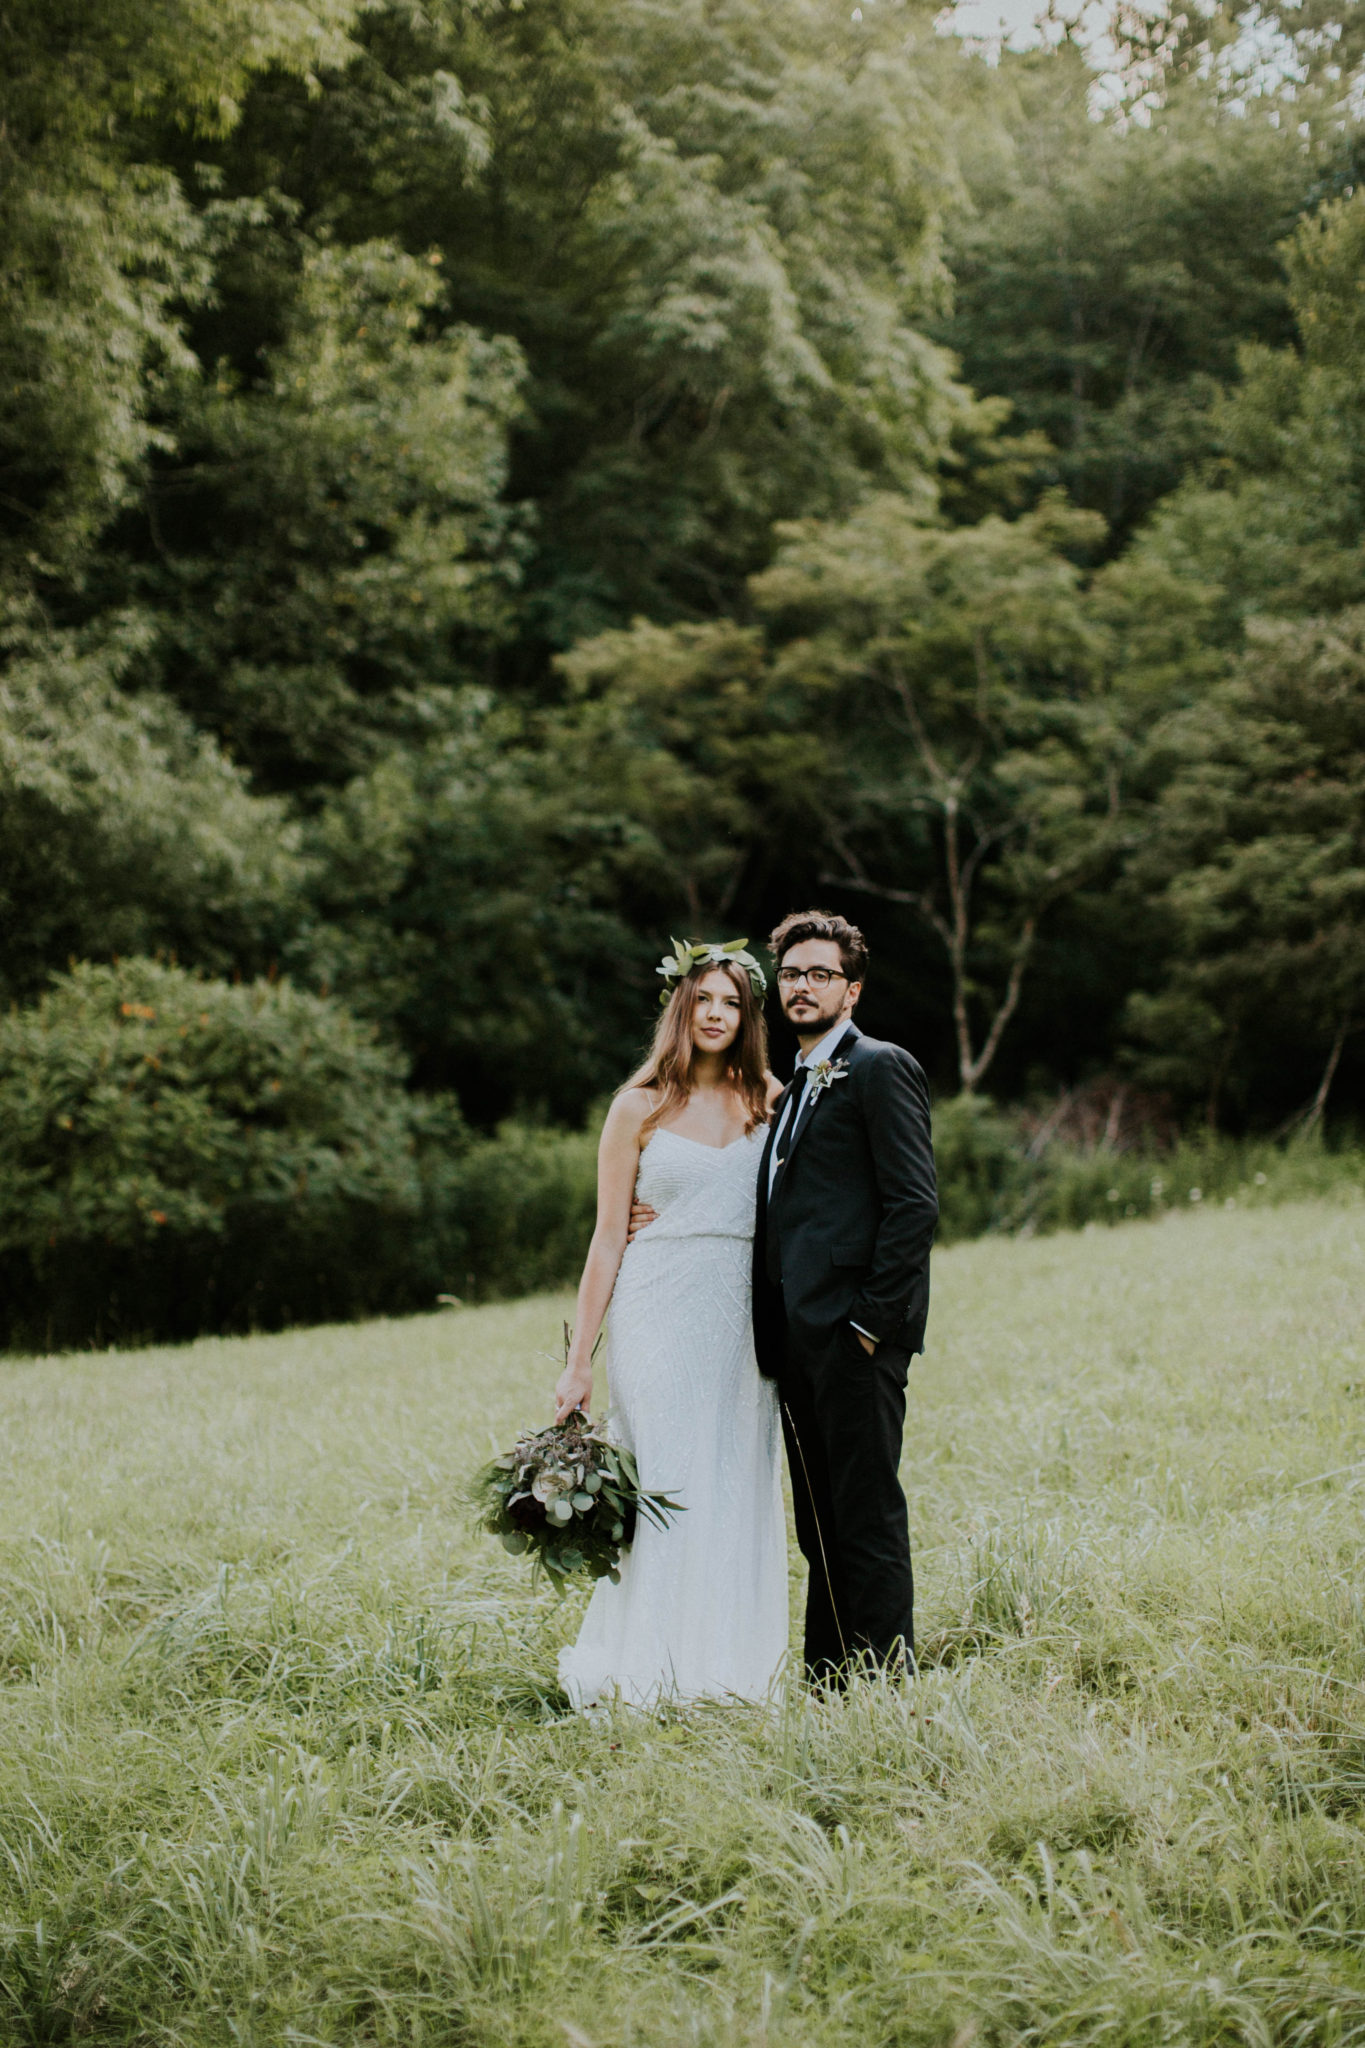 Anna & Jesus North Carolina Mountain Wedding Photographer-772